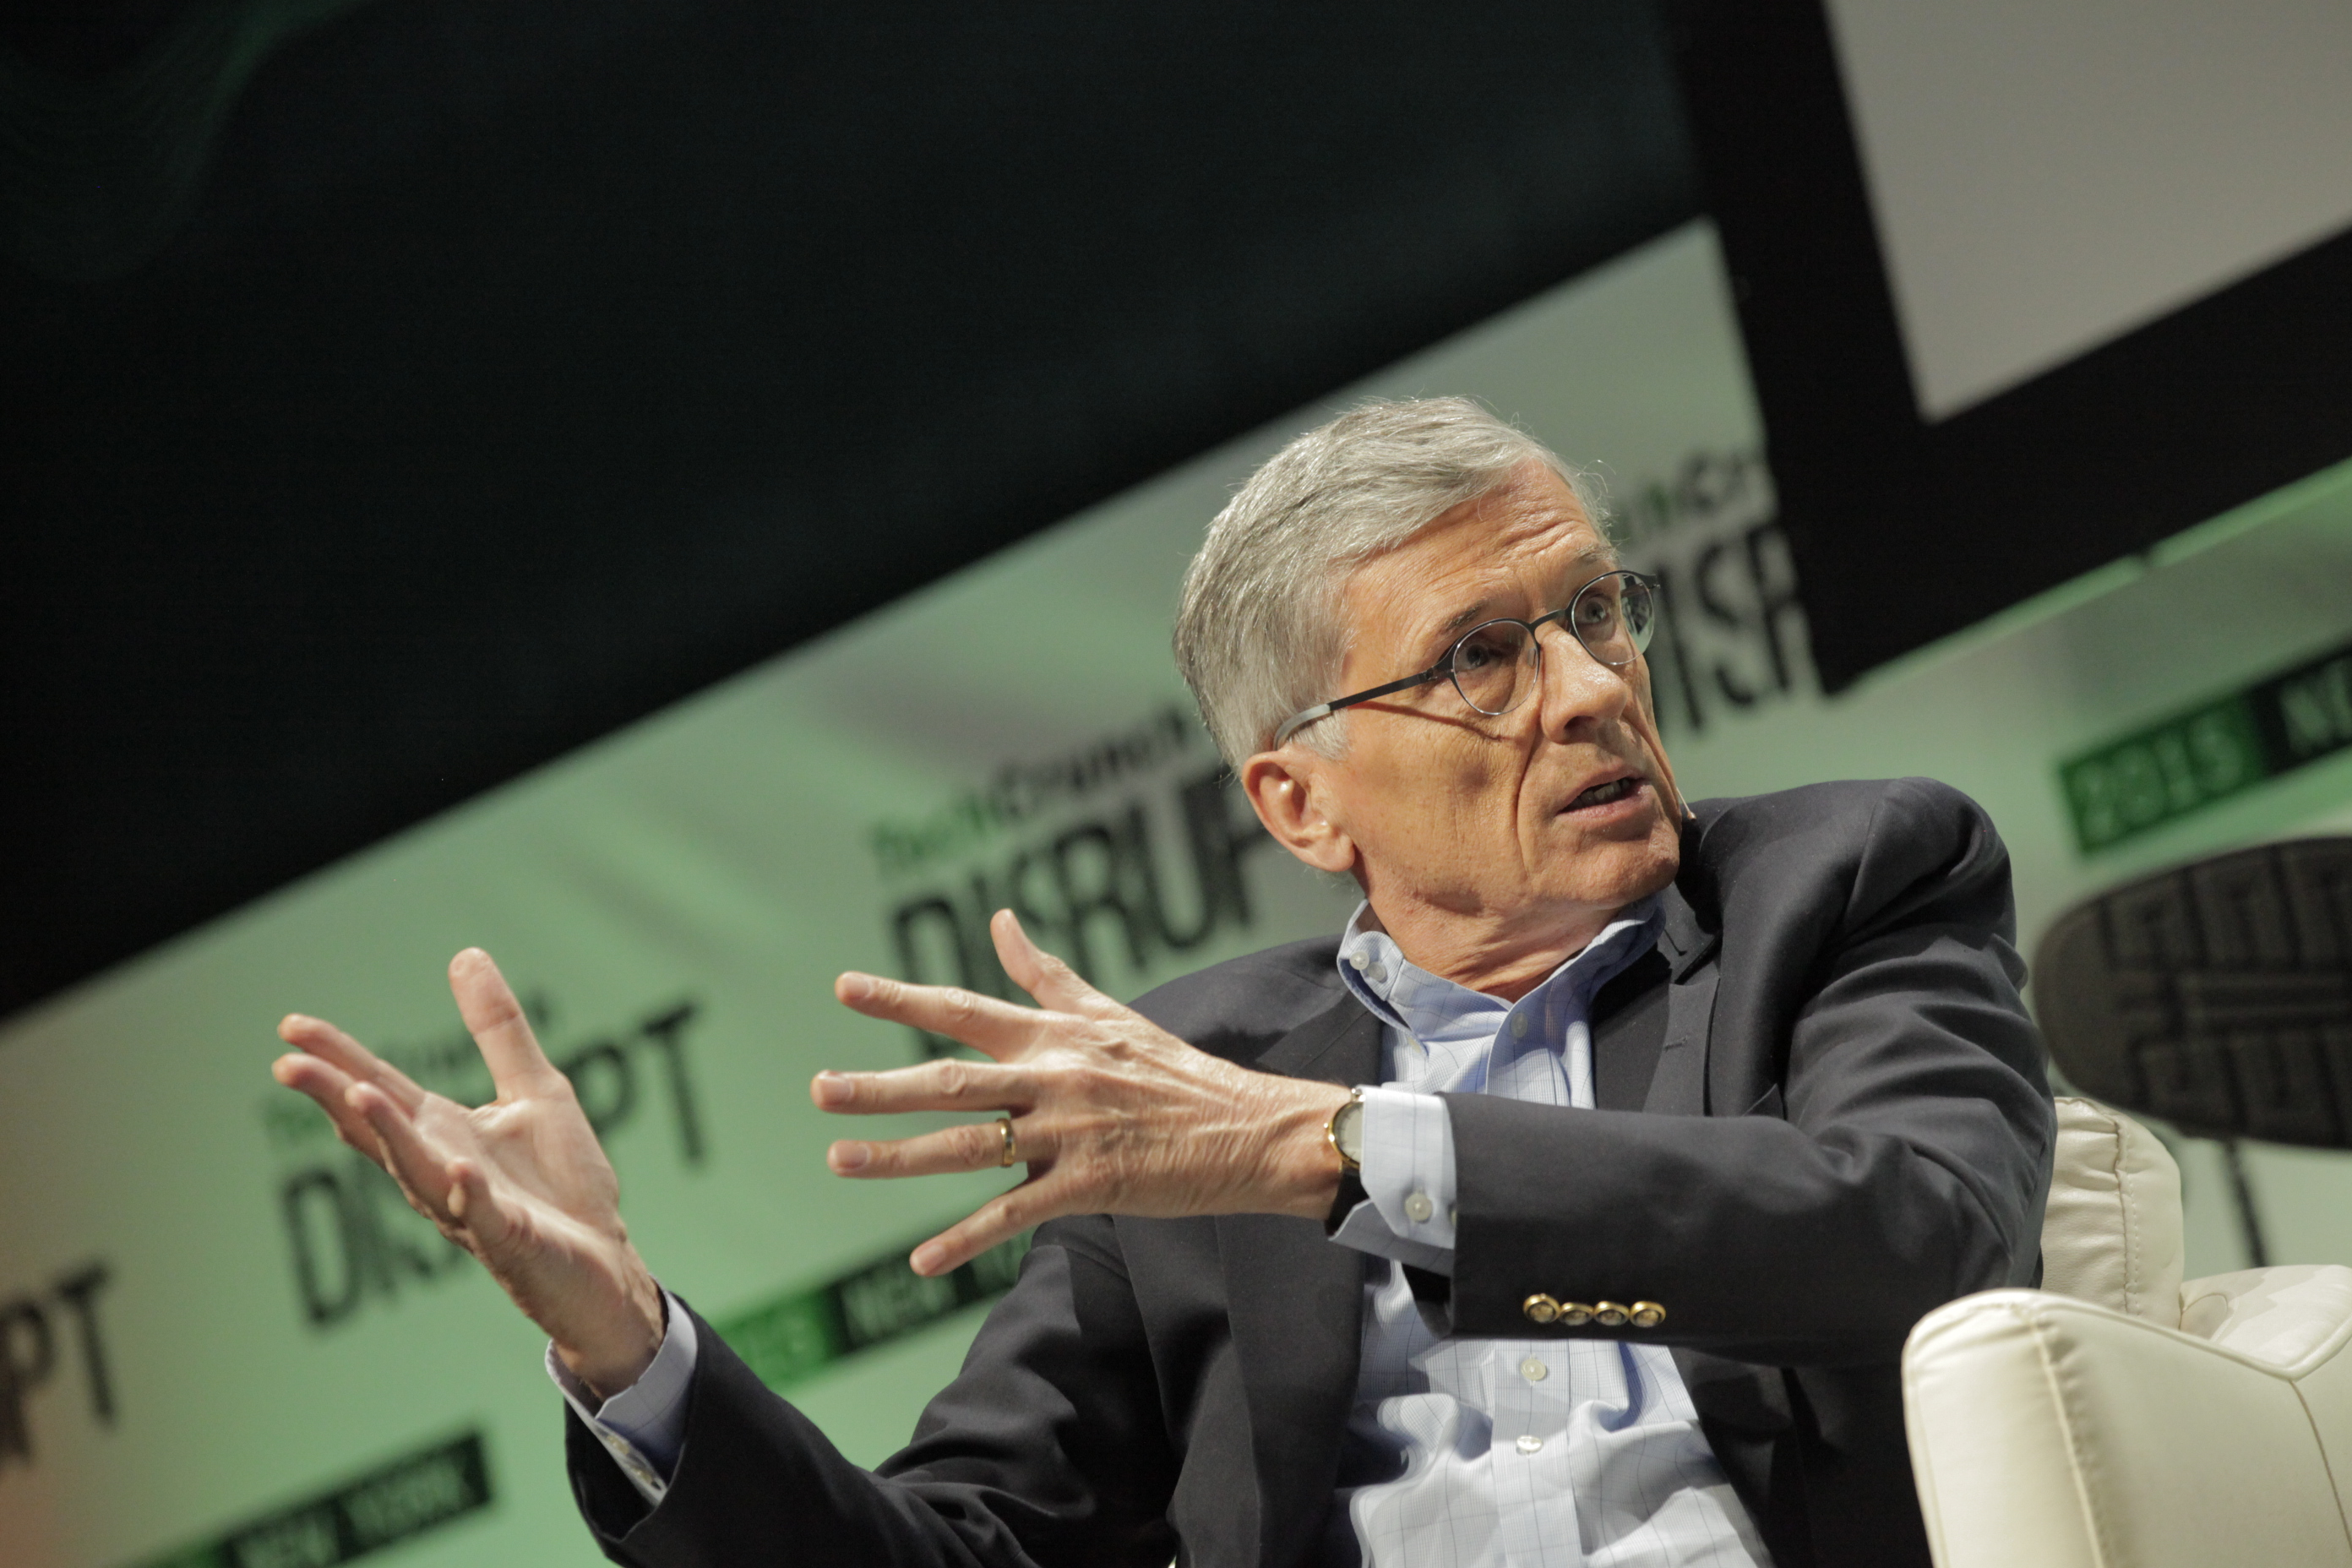 FCC Chairman Tom Wheeler at Disrupt in 2015.